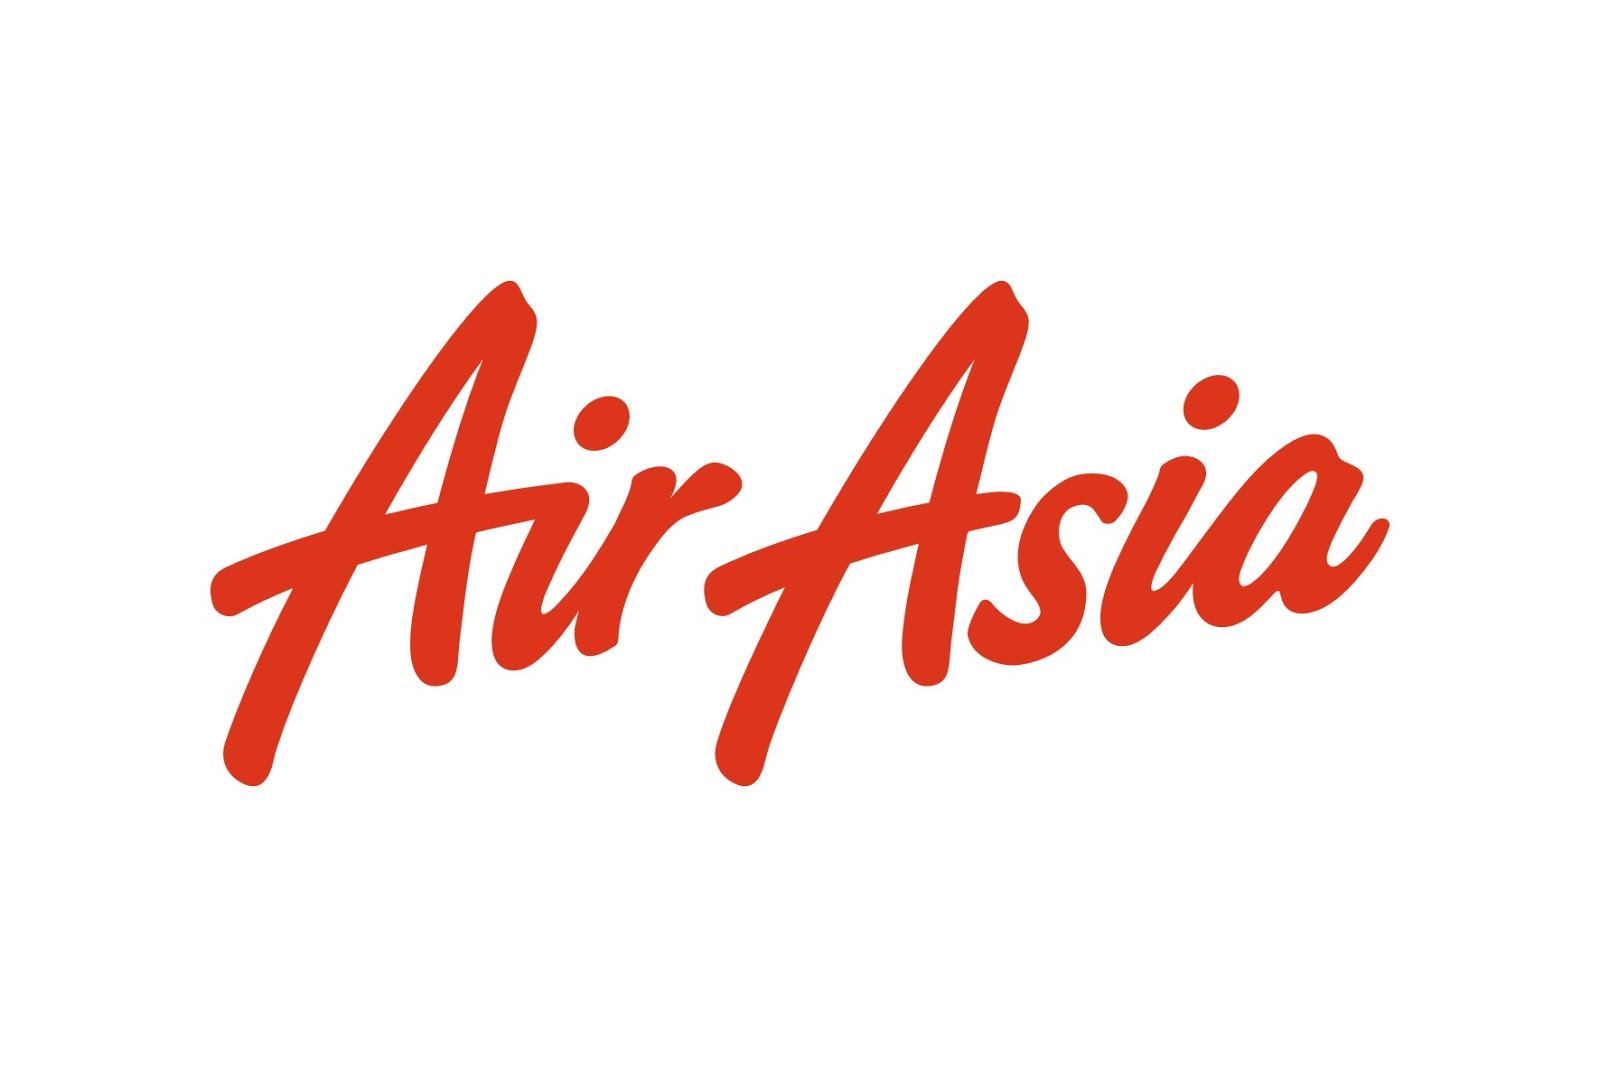 Sriwijaya Air Vector Logo Download Share A Logo Air Asia Logo Logo Share 1600x1067